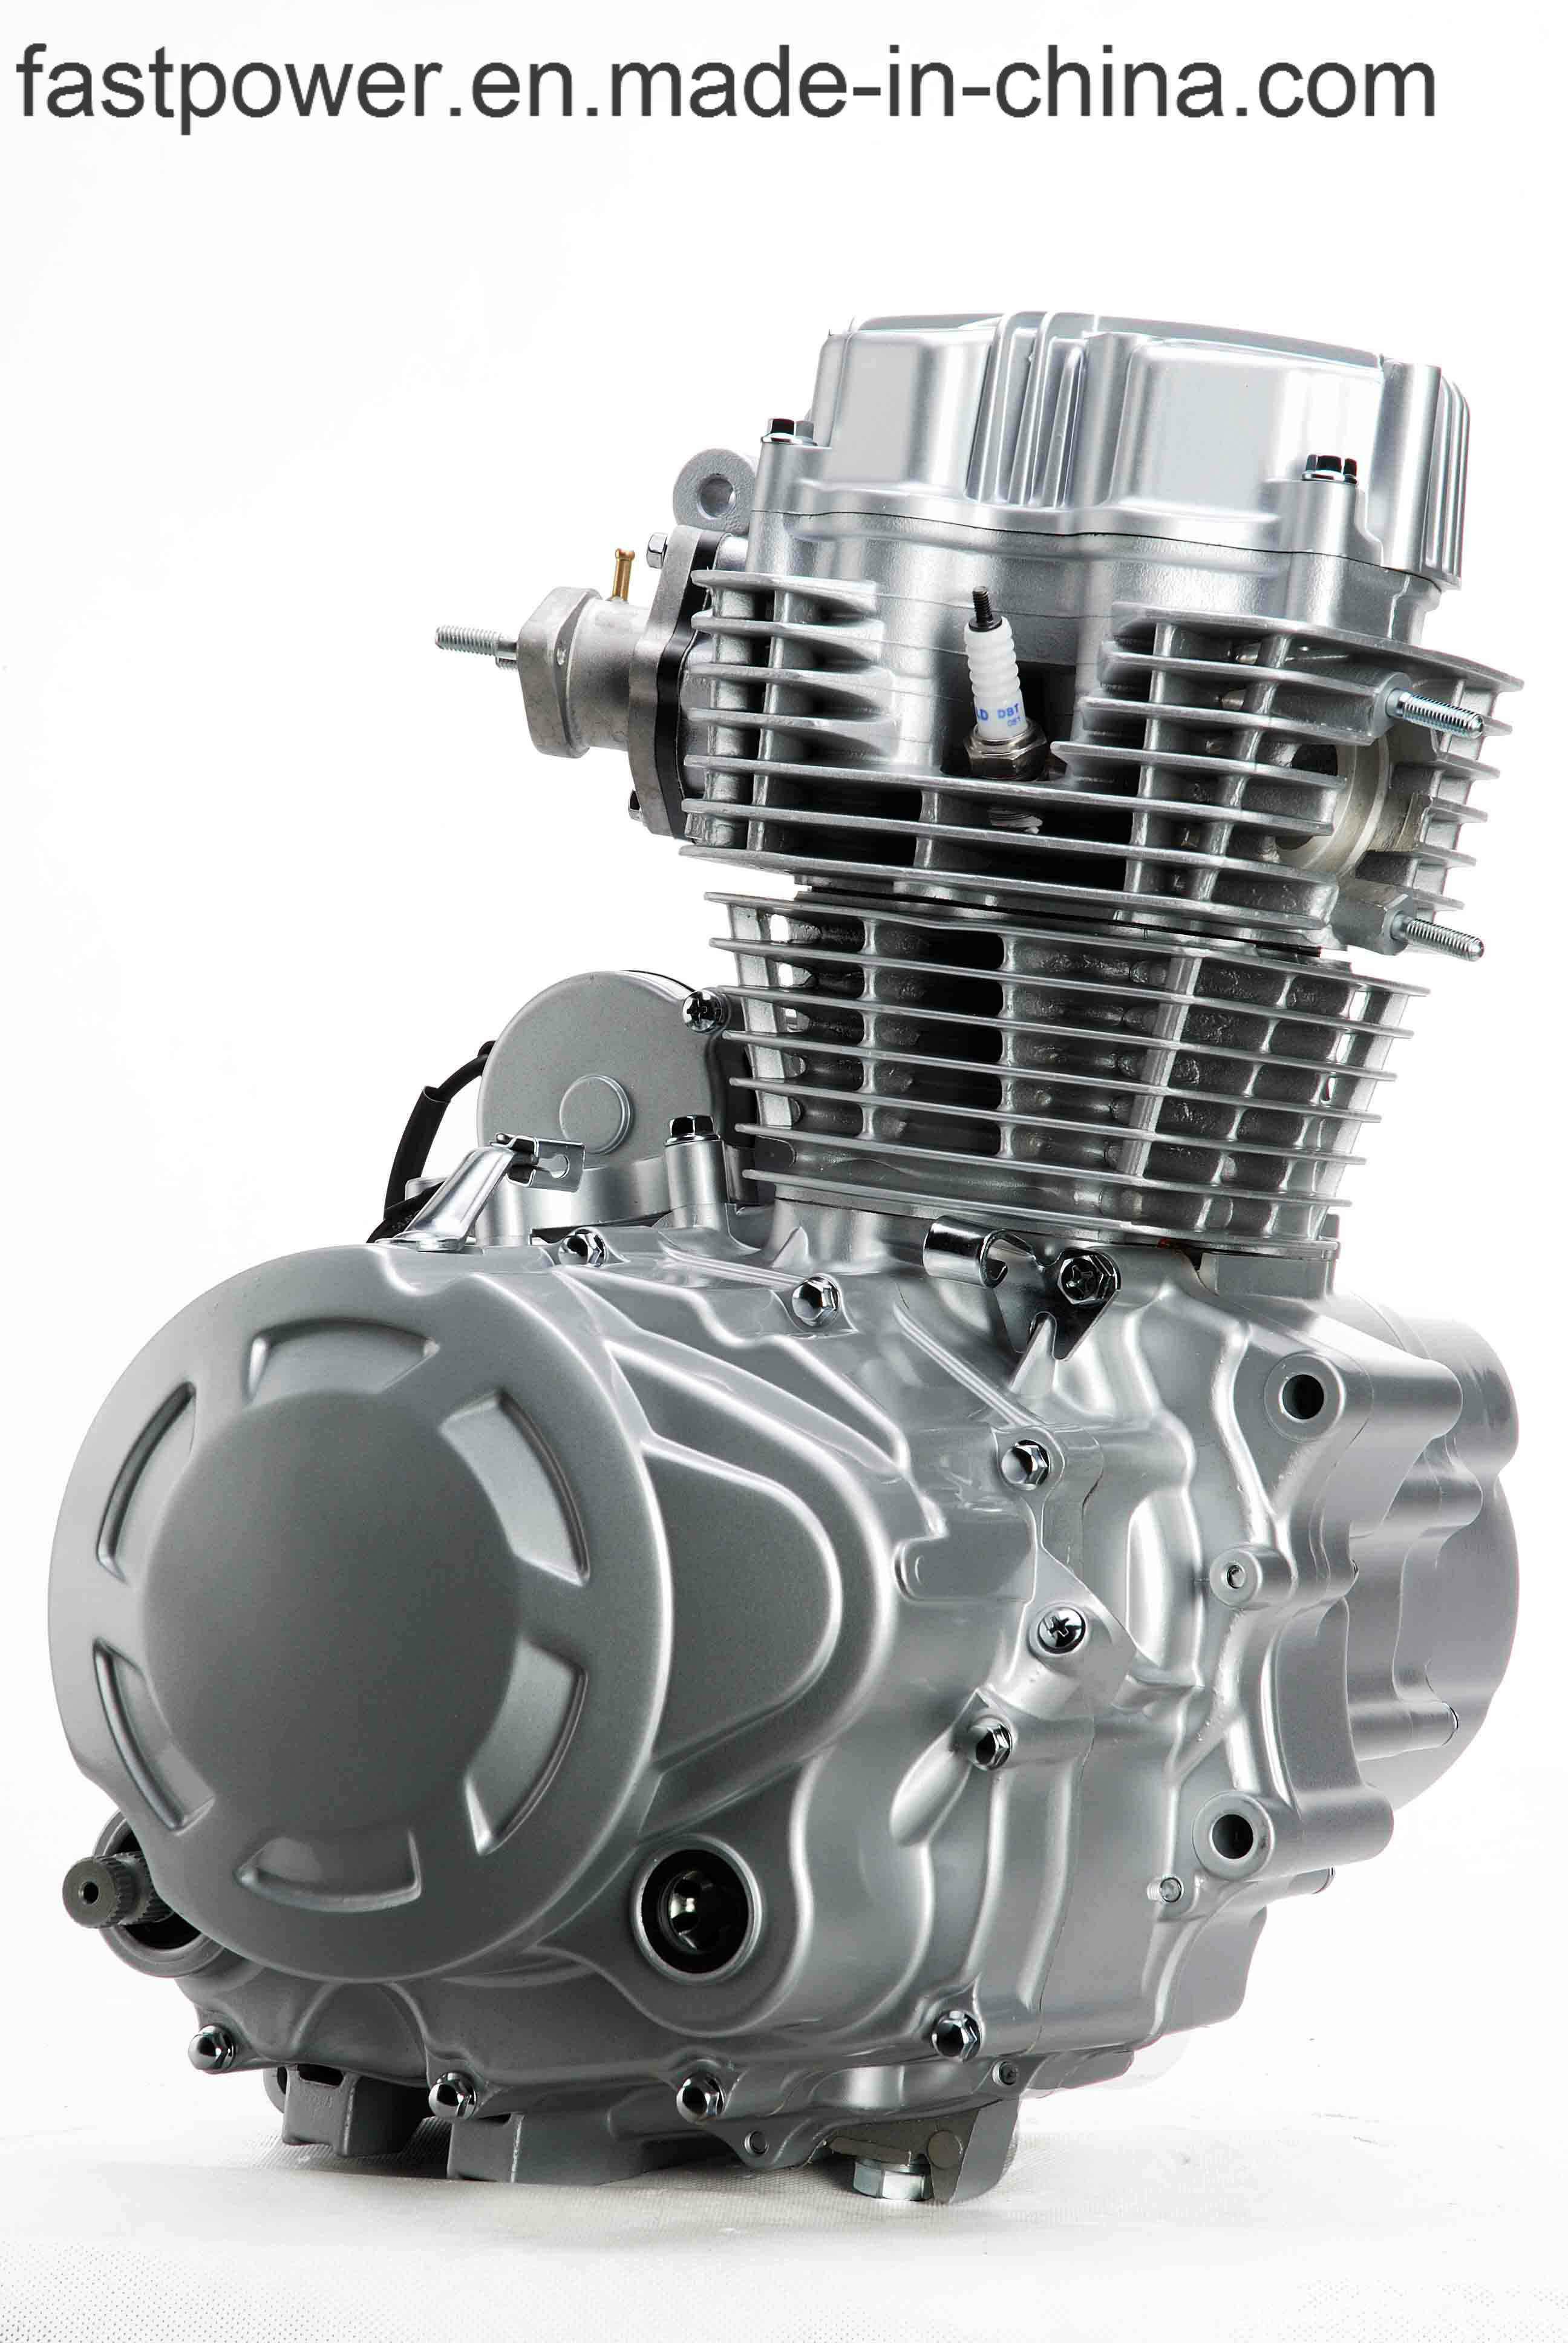 Engine for Cg150